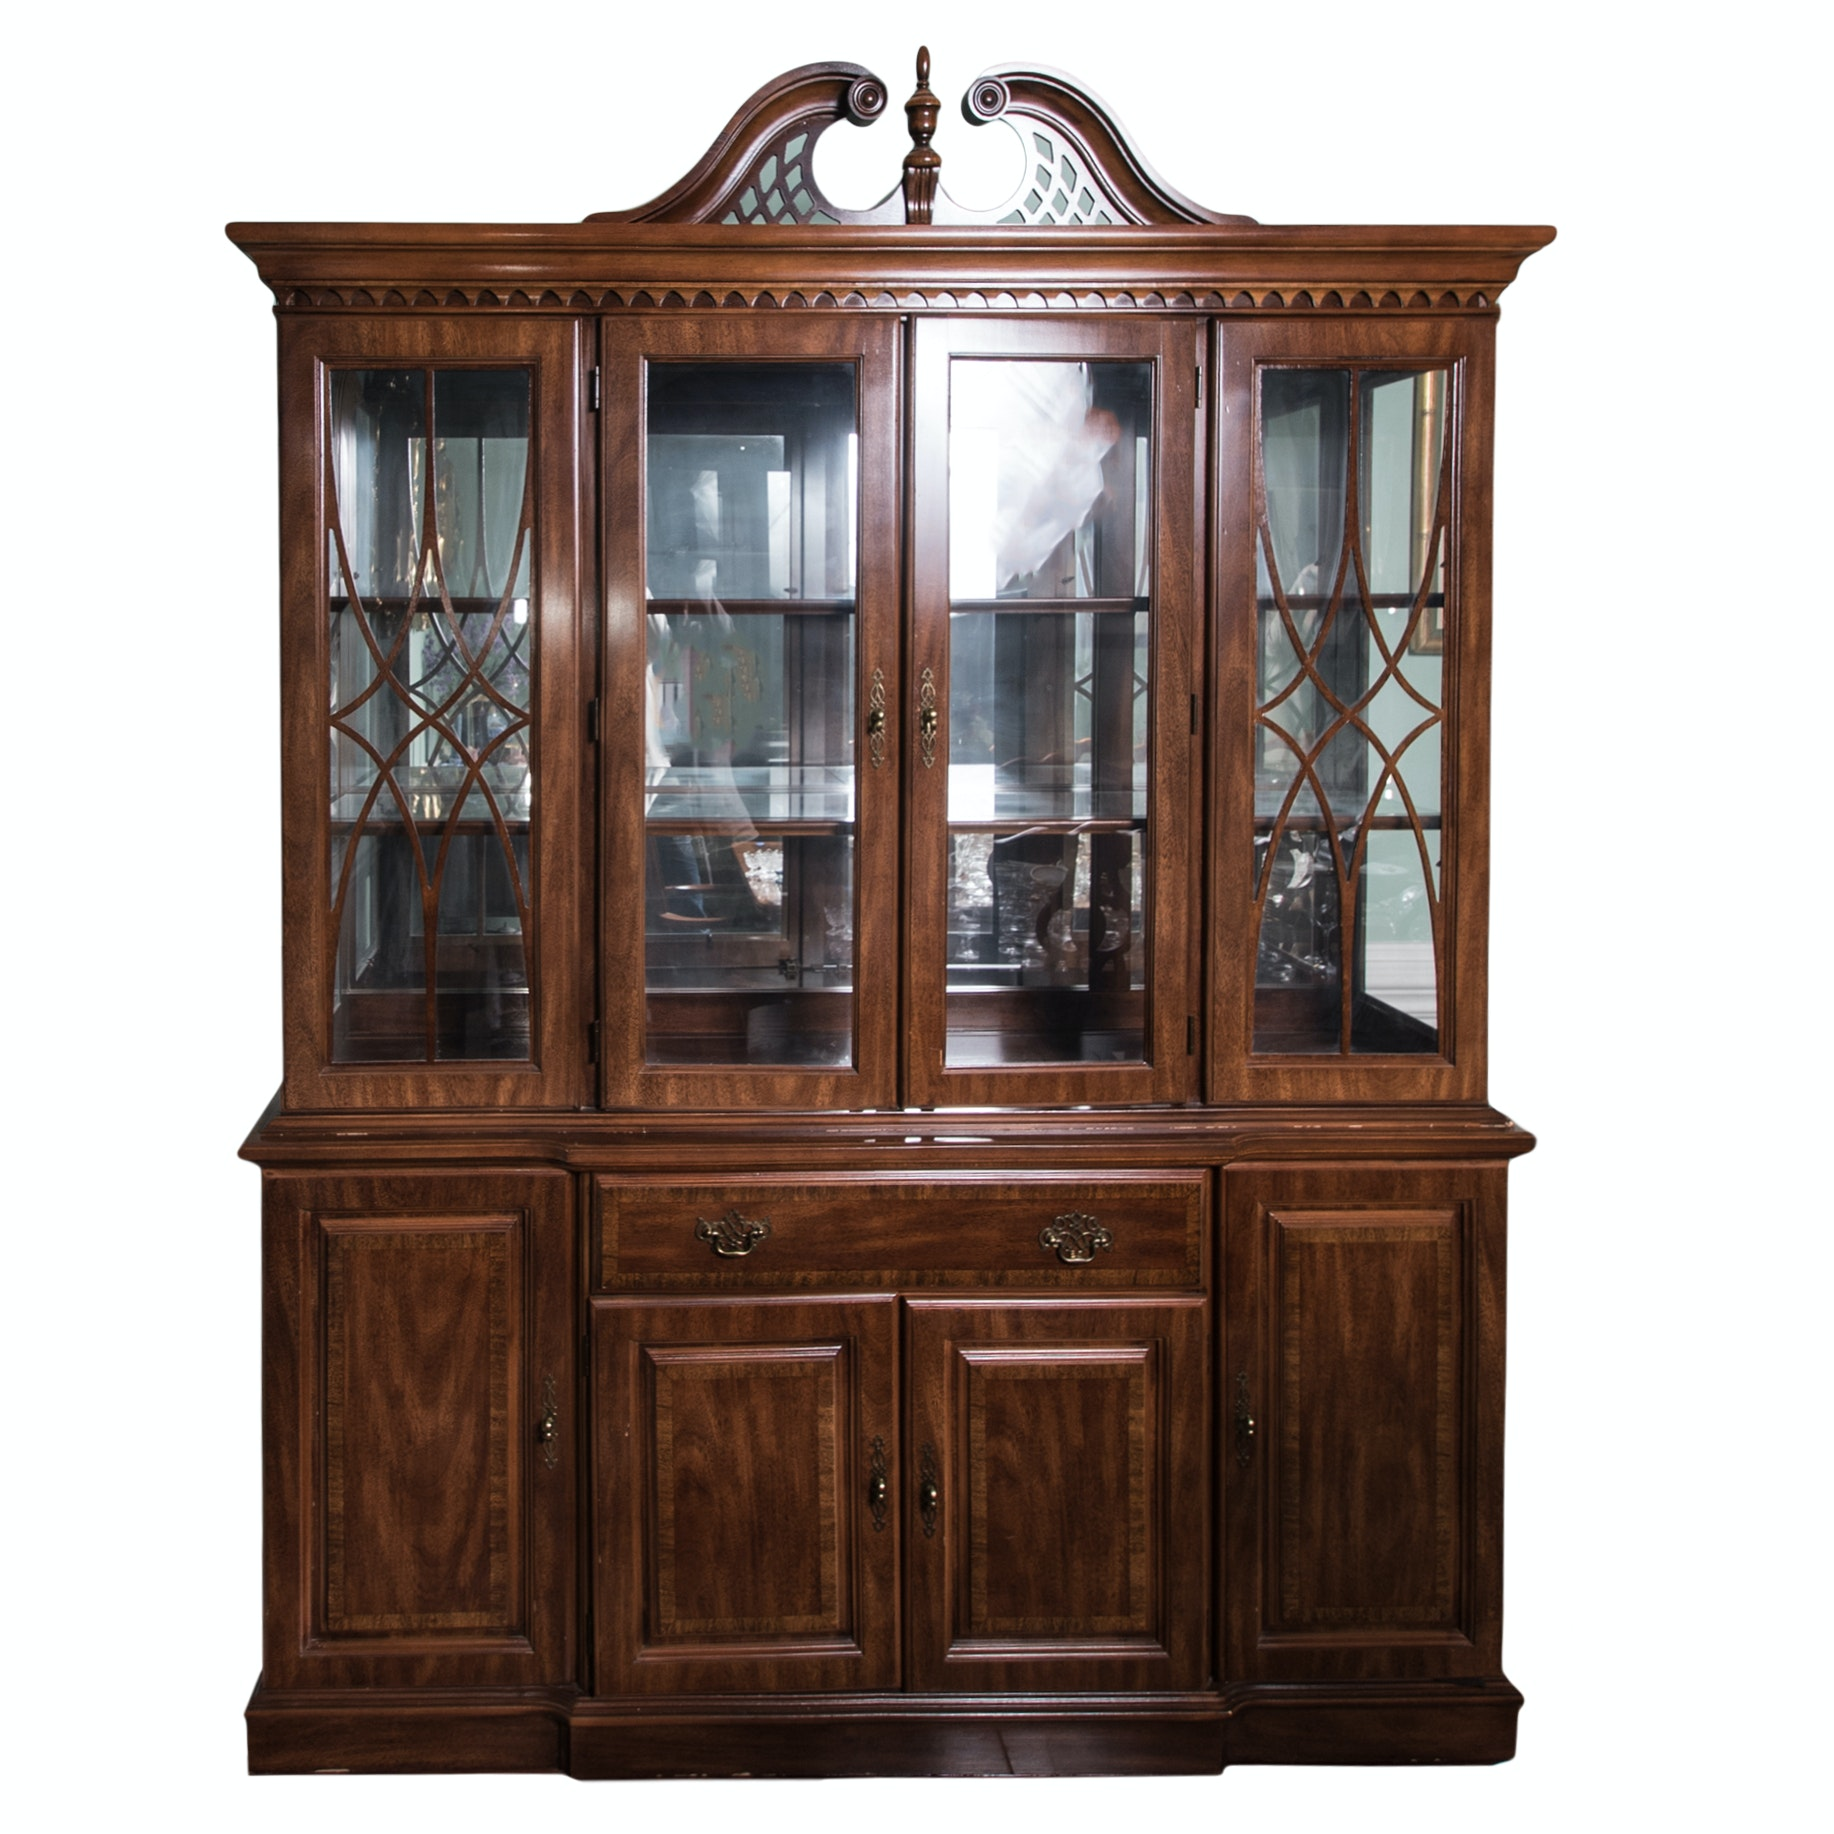 Contemporary Broyhill China Cabinet ...